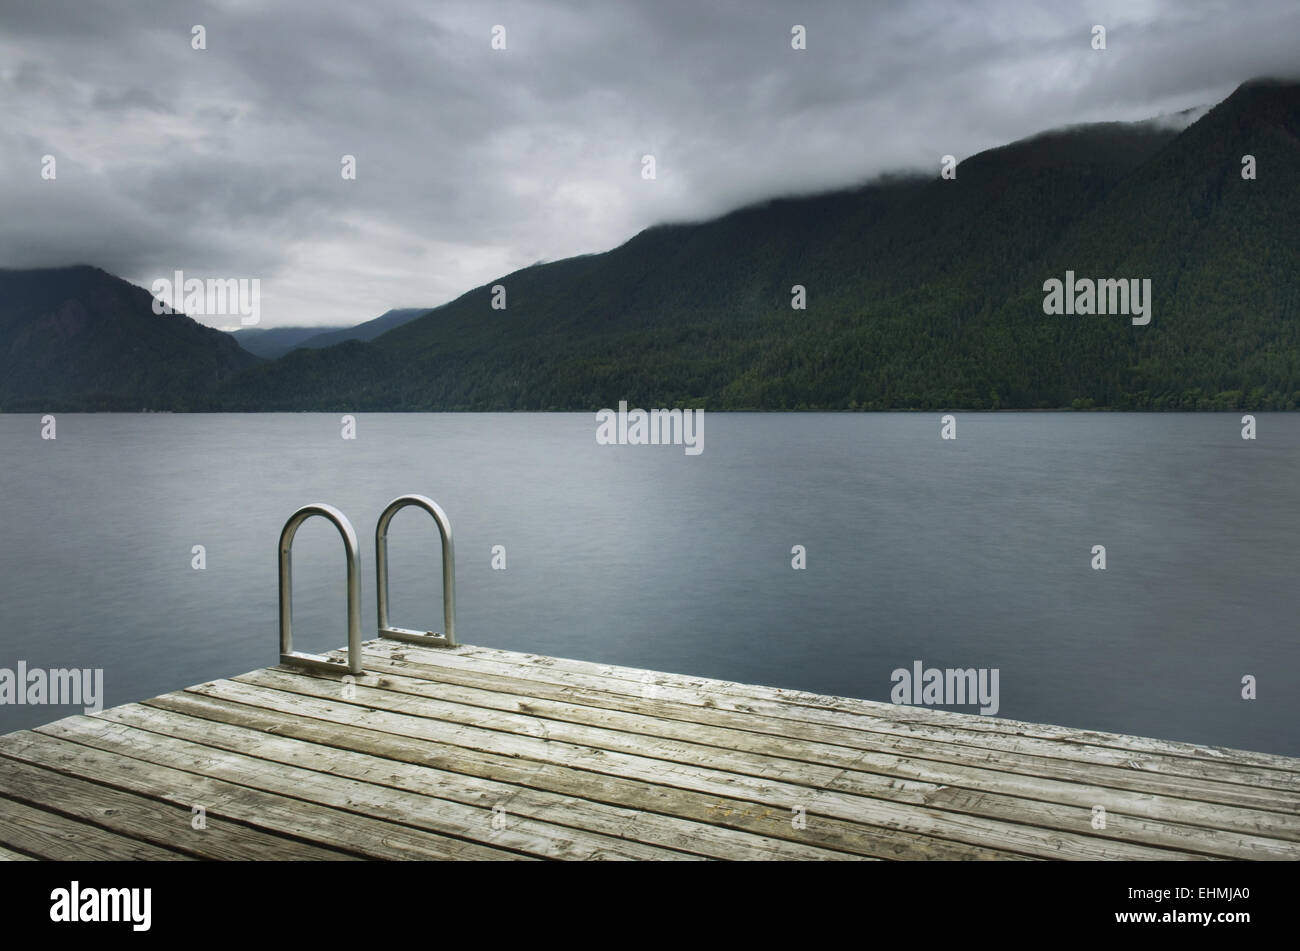 Ladder on wooden pier at still remote lake - Stock Image